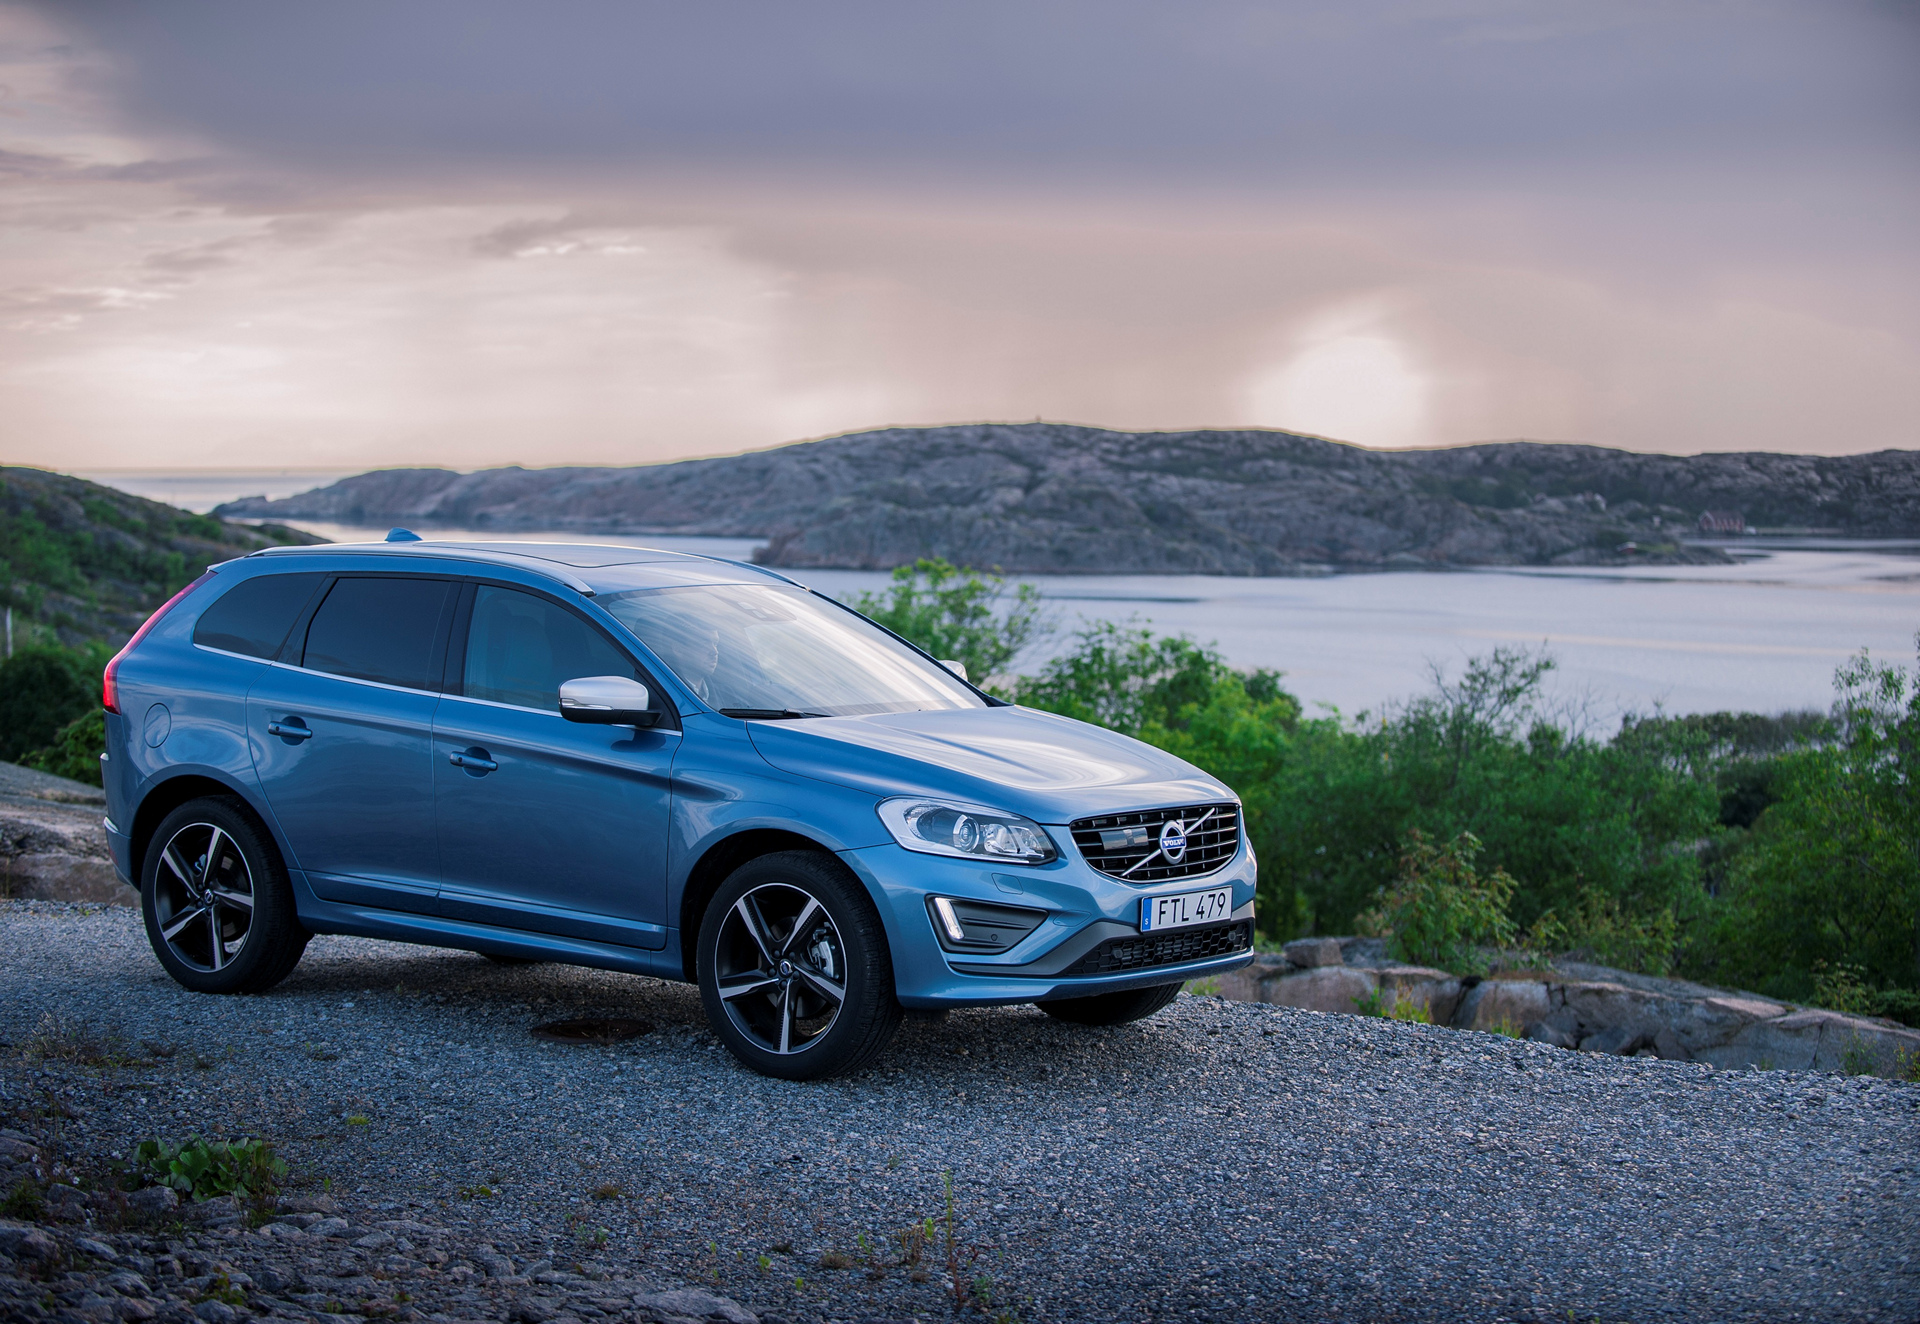 2016 Volvo XC60 © Zhejiang Geely Holding Group Co., Ltd